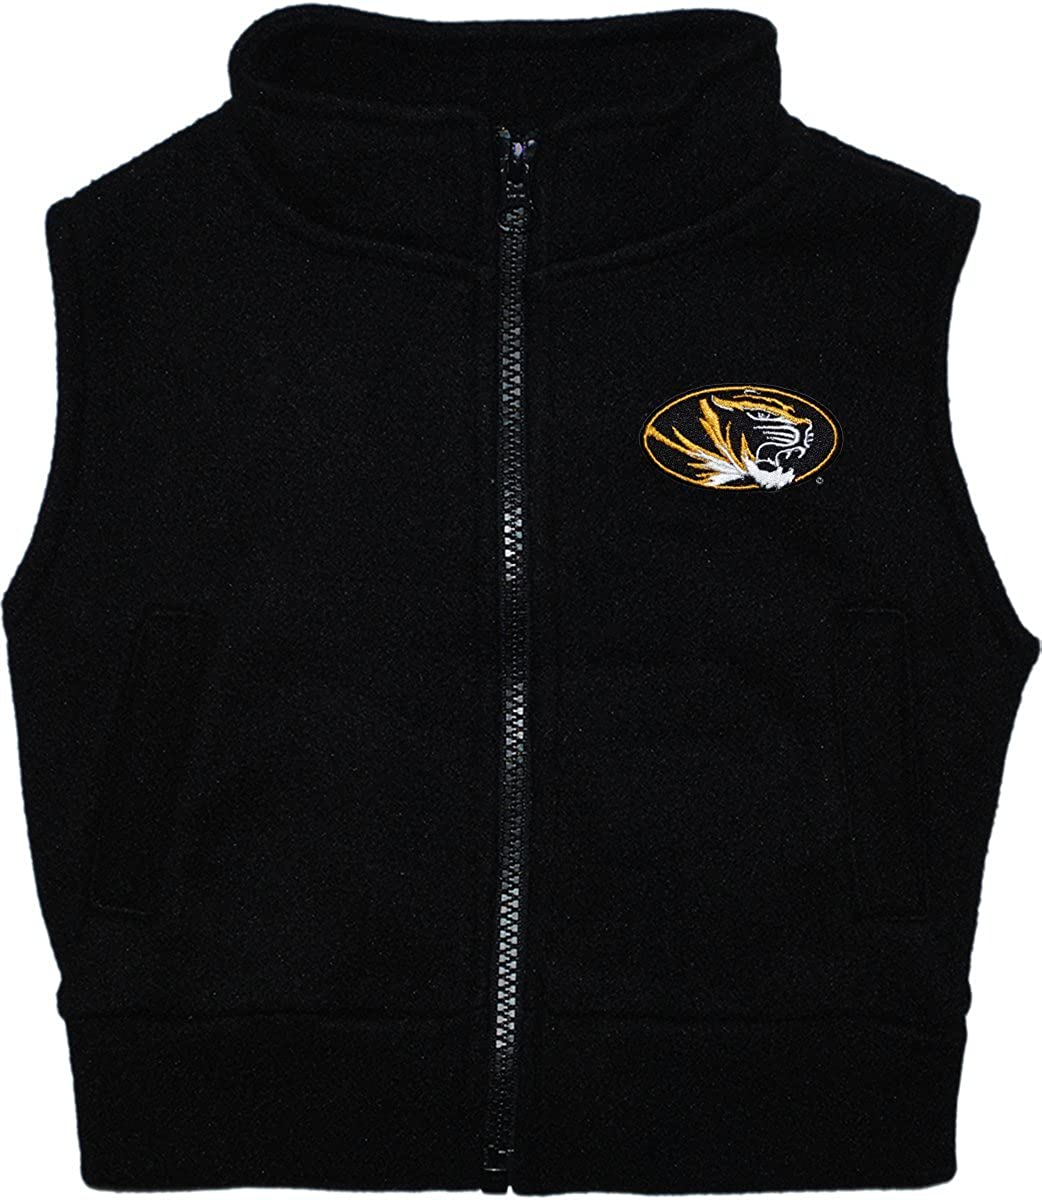 University of Missouri Tigers Baby and Toddler Polar Fleece Vest